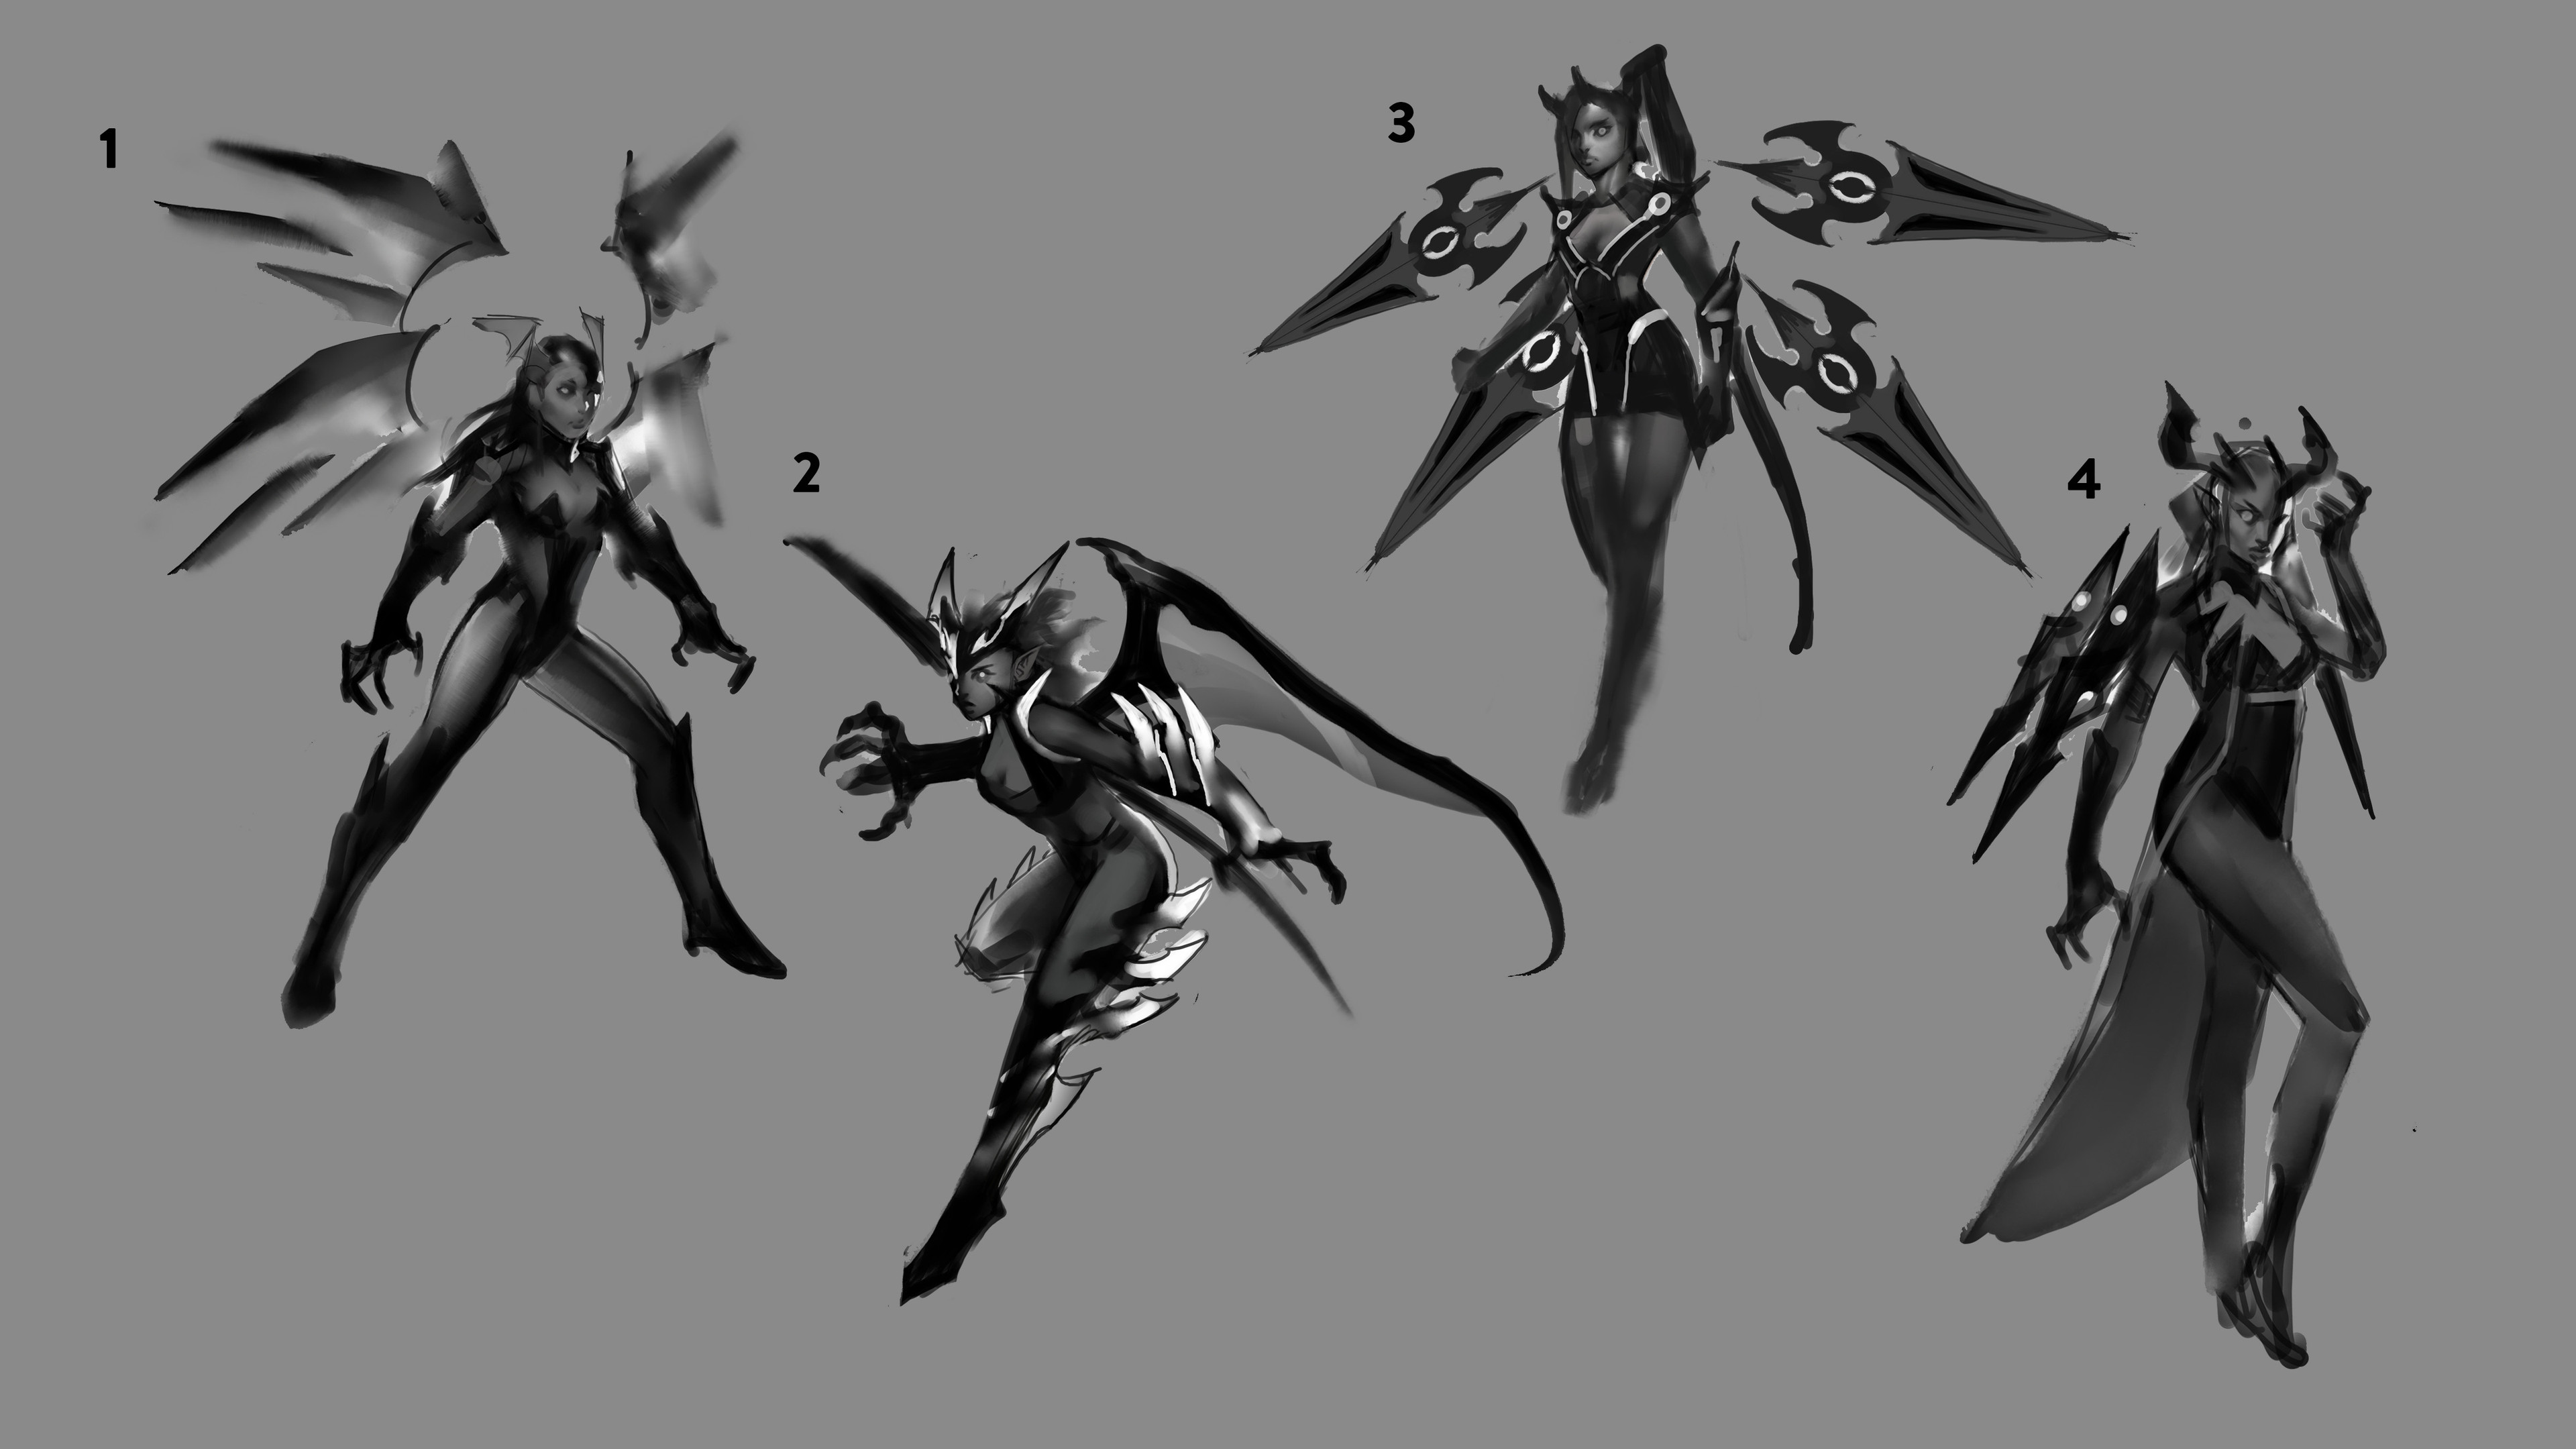 Some rough early sketches